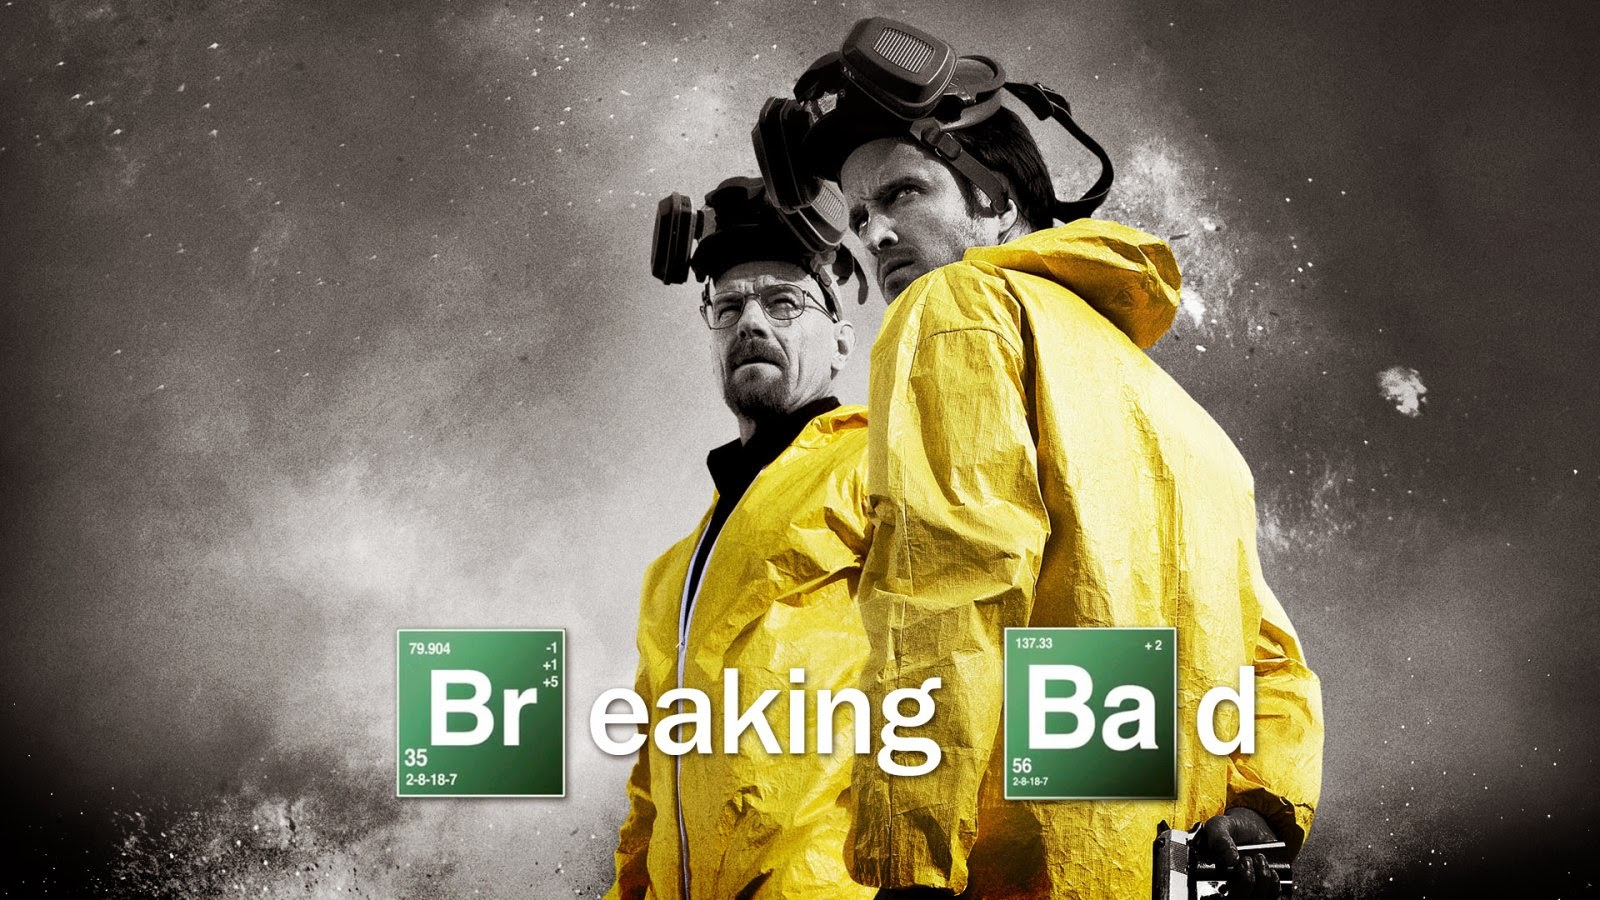 Bad Serie Breaking Bad Serie Completa Full Hd 1080p Latino Series